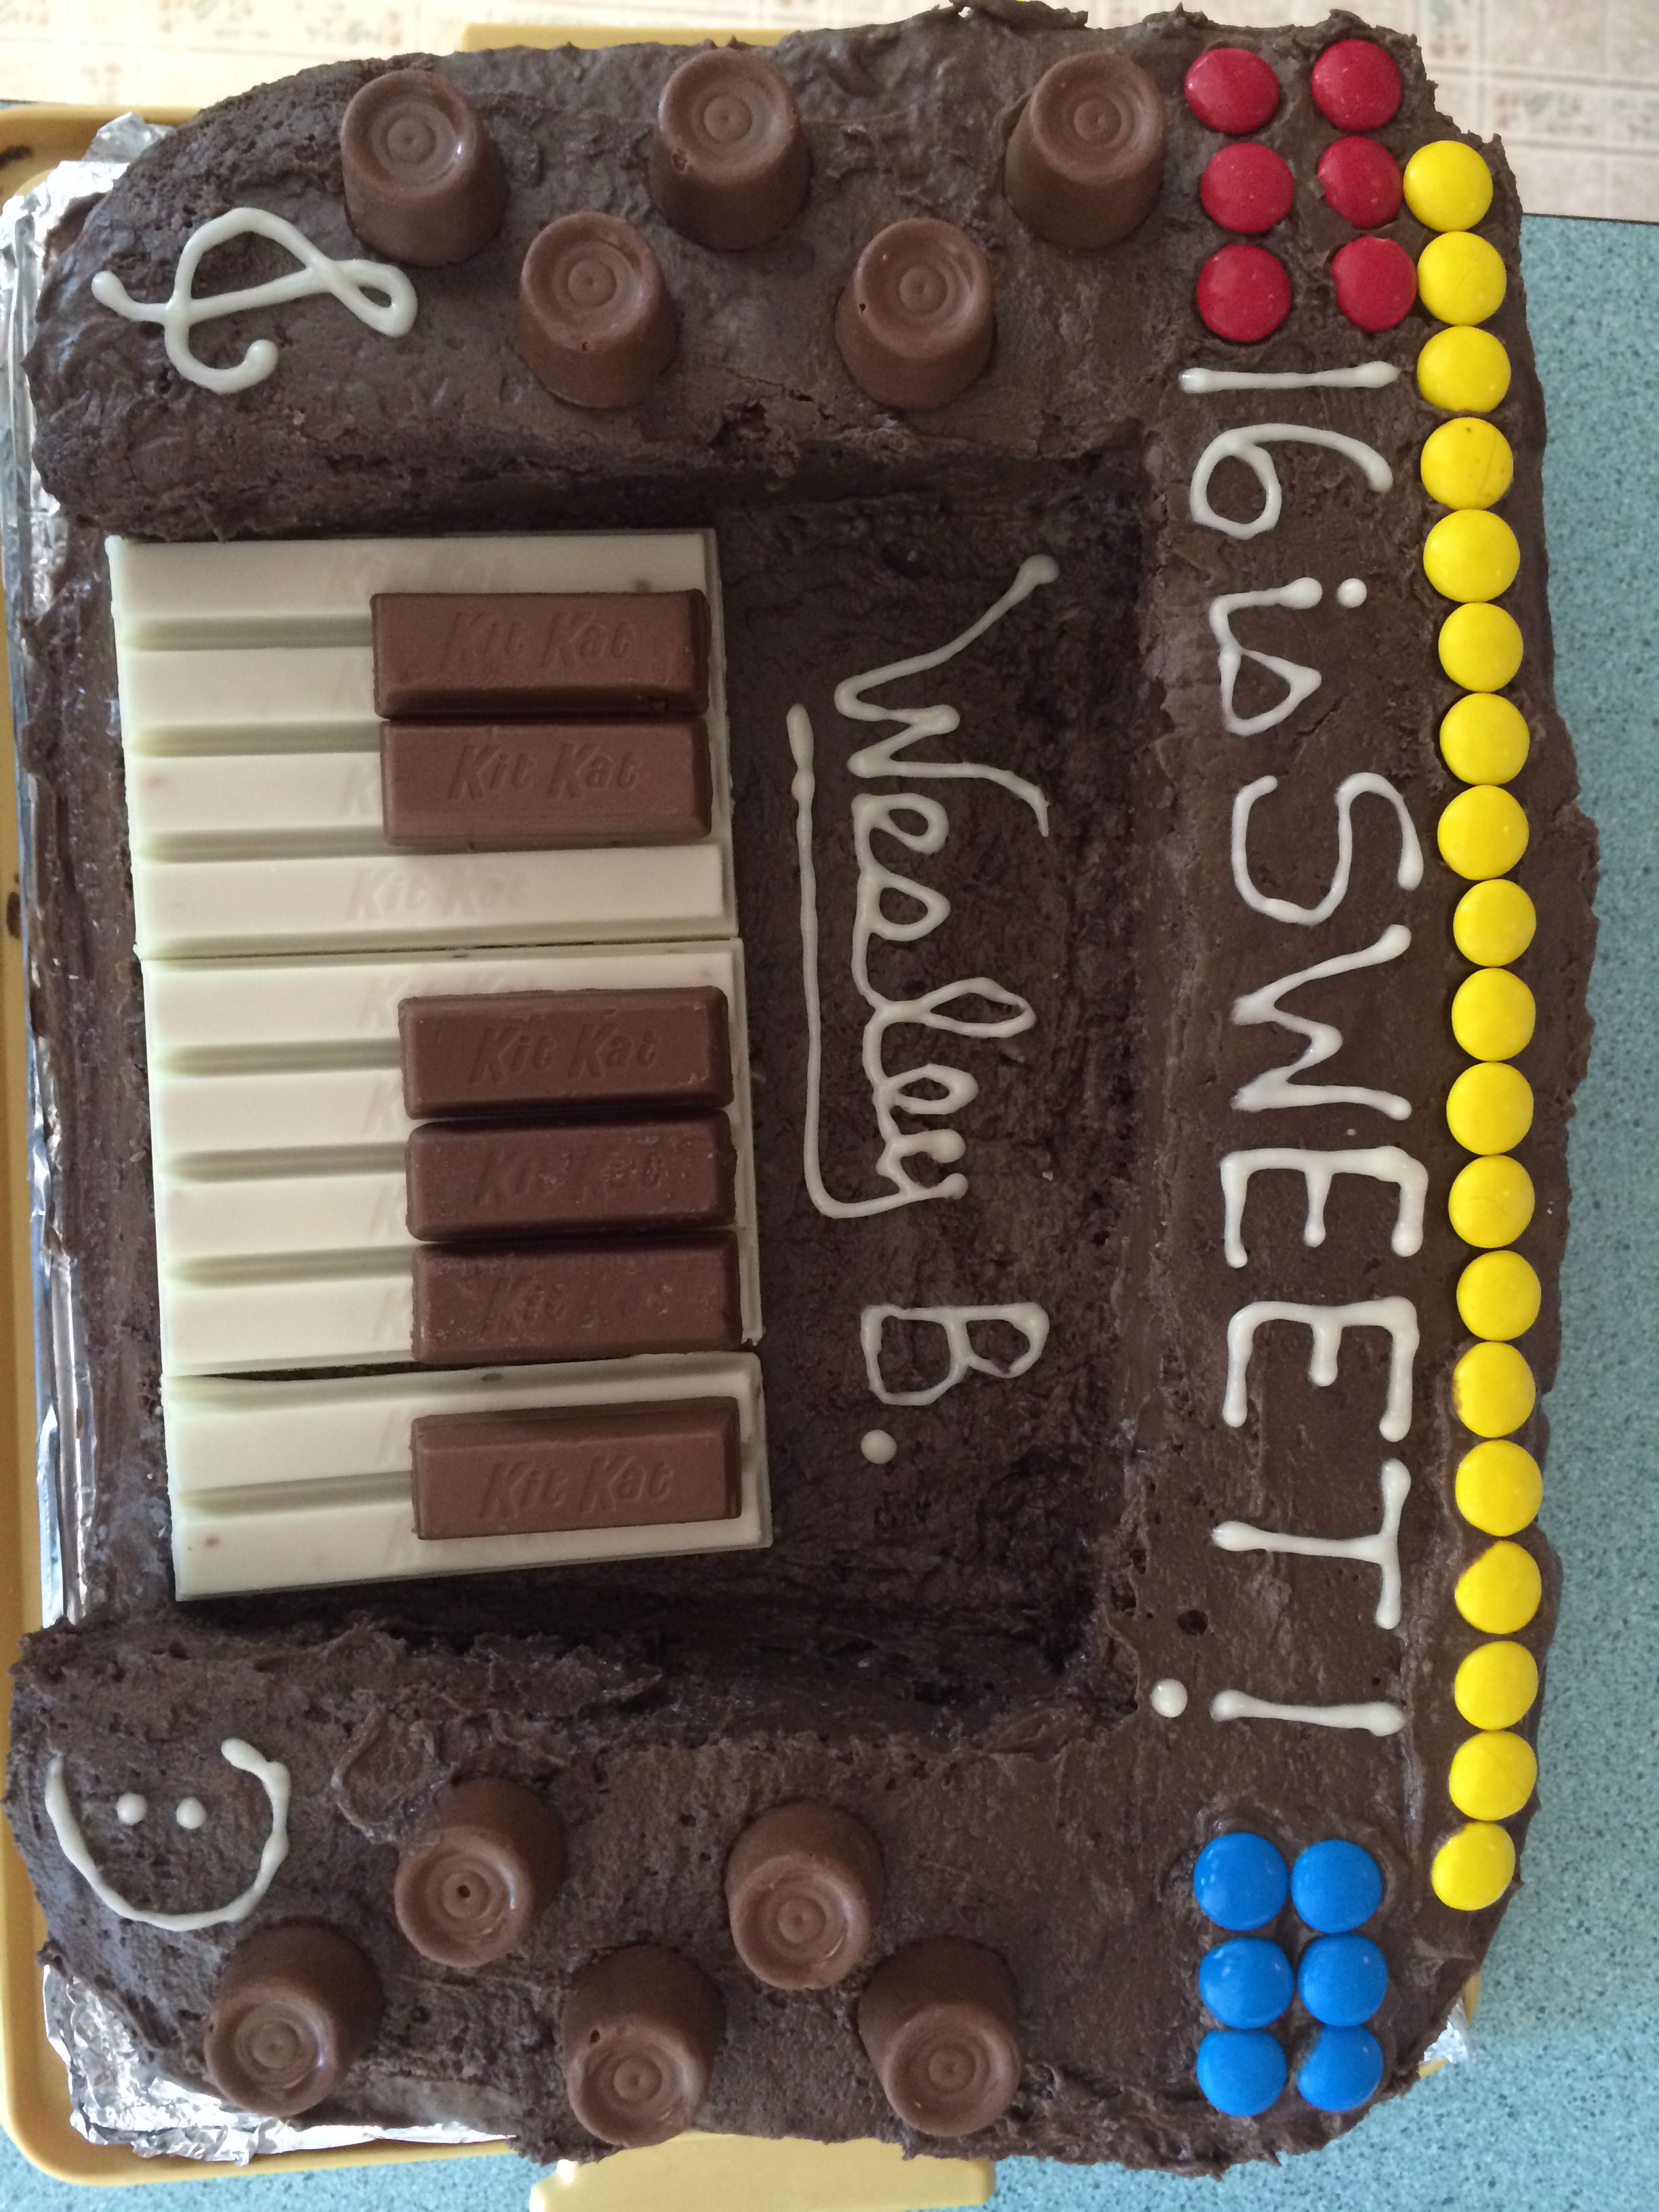 My cousin is a young organ playing musician. He turned 16 and we made his birthday the sweetest 16 possible!